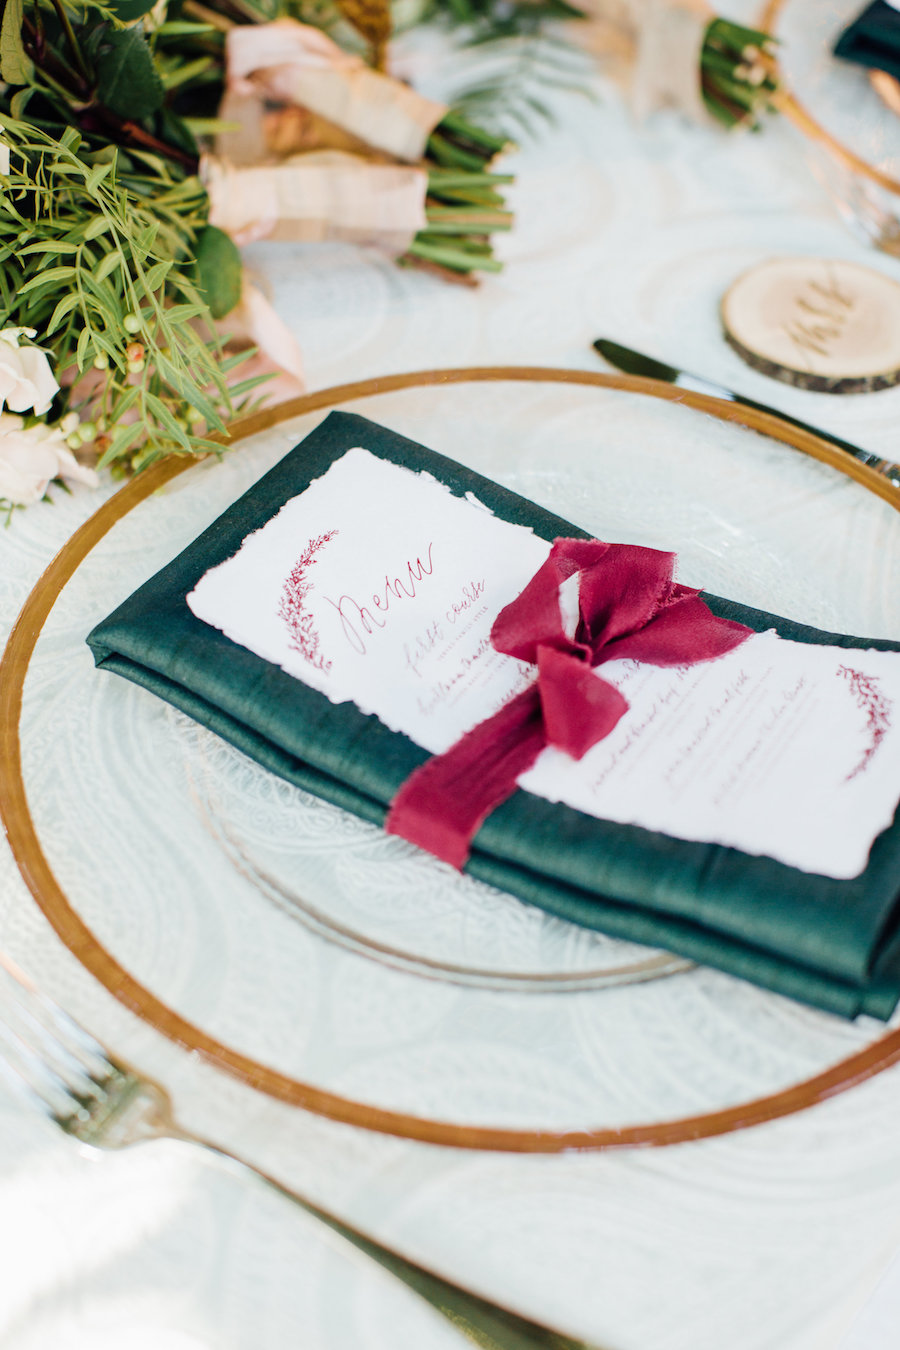 Chic Jewel-Toned Styled Shoot Featured on California Wedding Day12.jpg